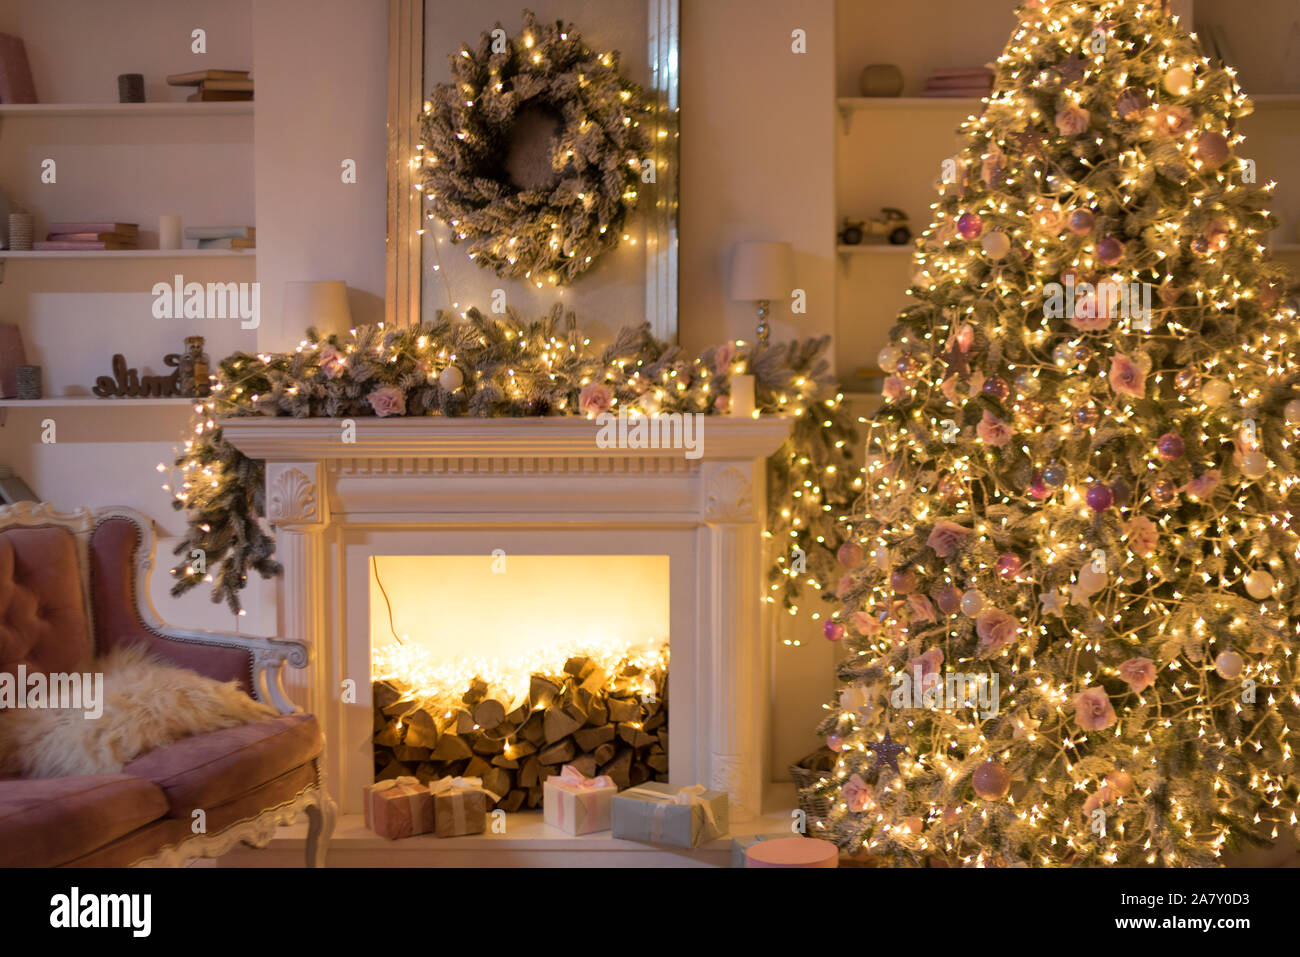 Warm Cozy Evening Christmas Eve Christmas Room With Fireplace Interior Design Xmas Tree Decorated By Lights Gifts Toys Garland Lighting Fireplace Stock Photo Alamy